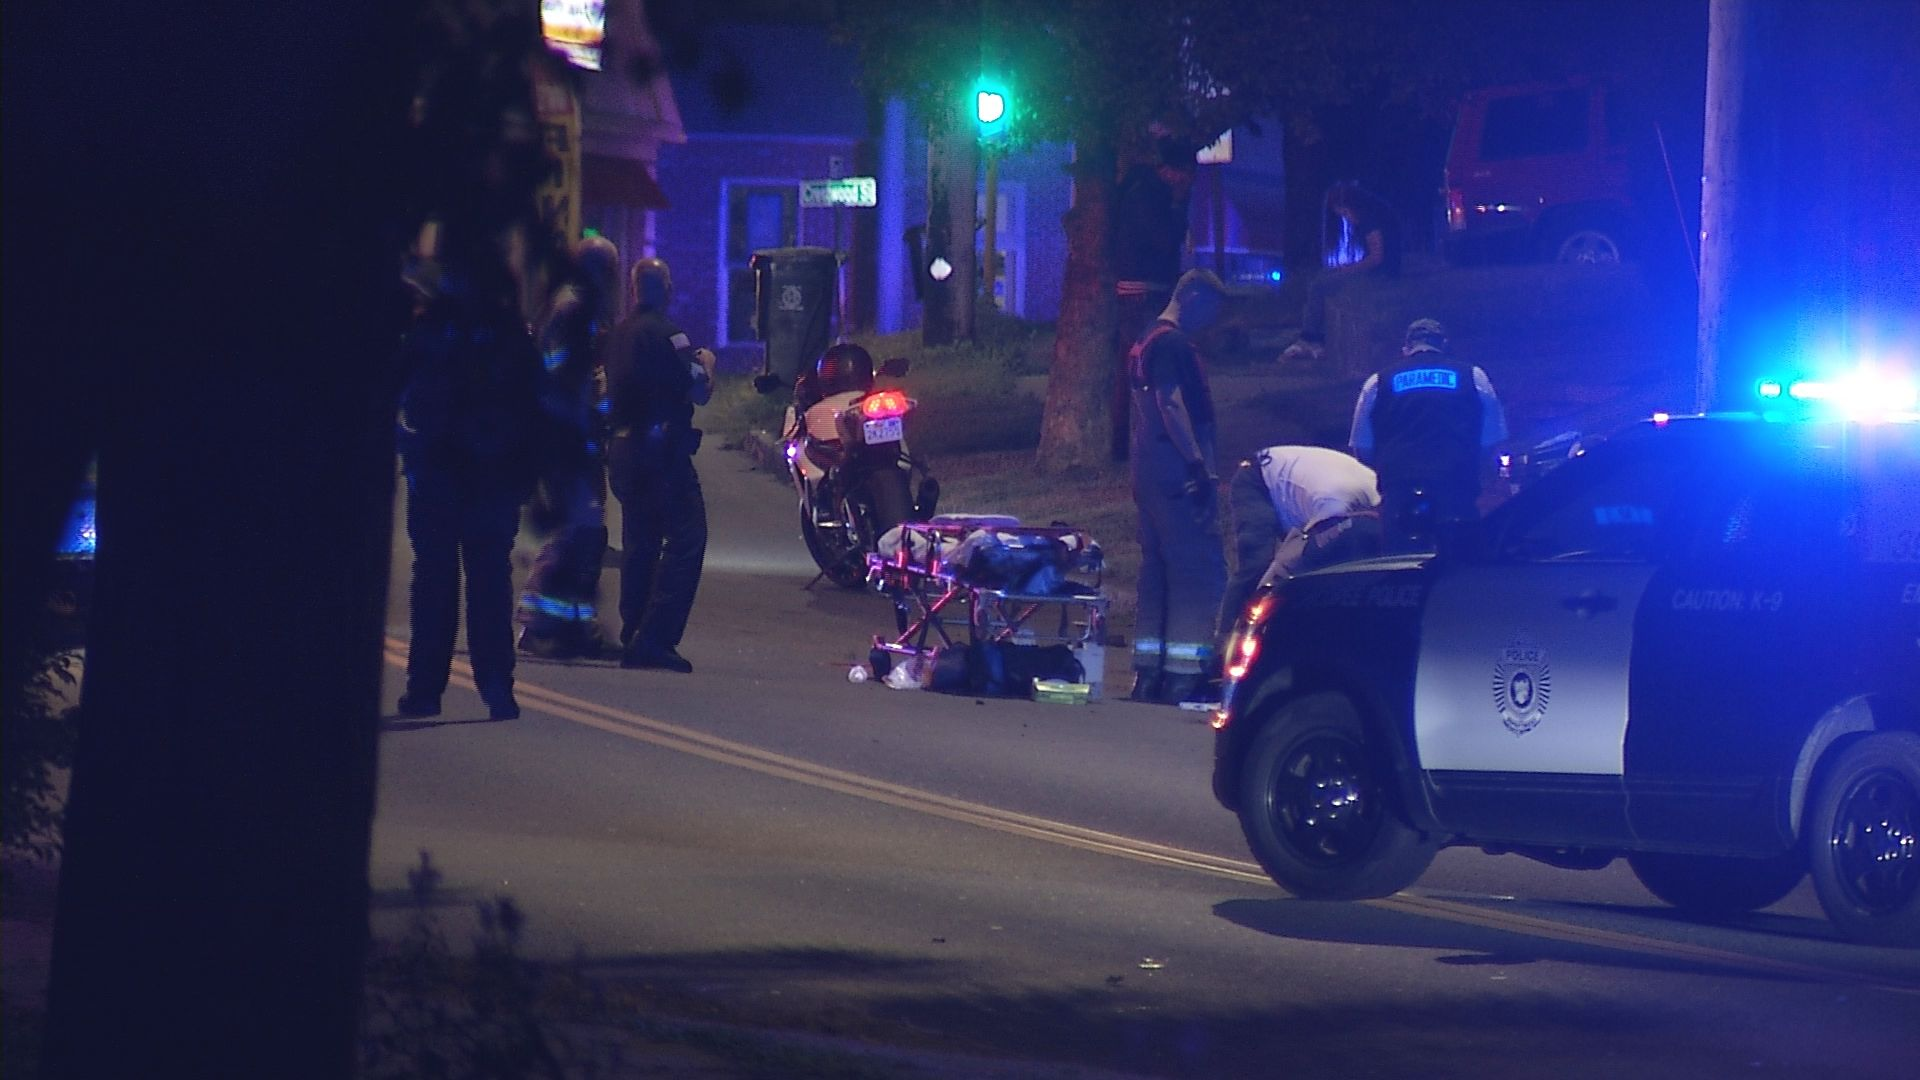 Victim identified in deadly motorcycle crash in Chicopee | WWLP